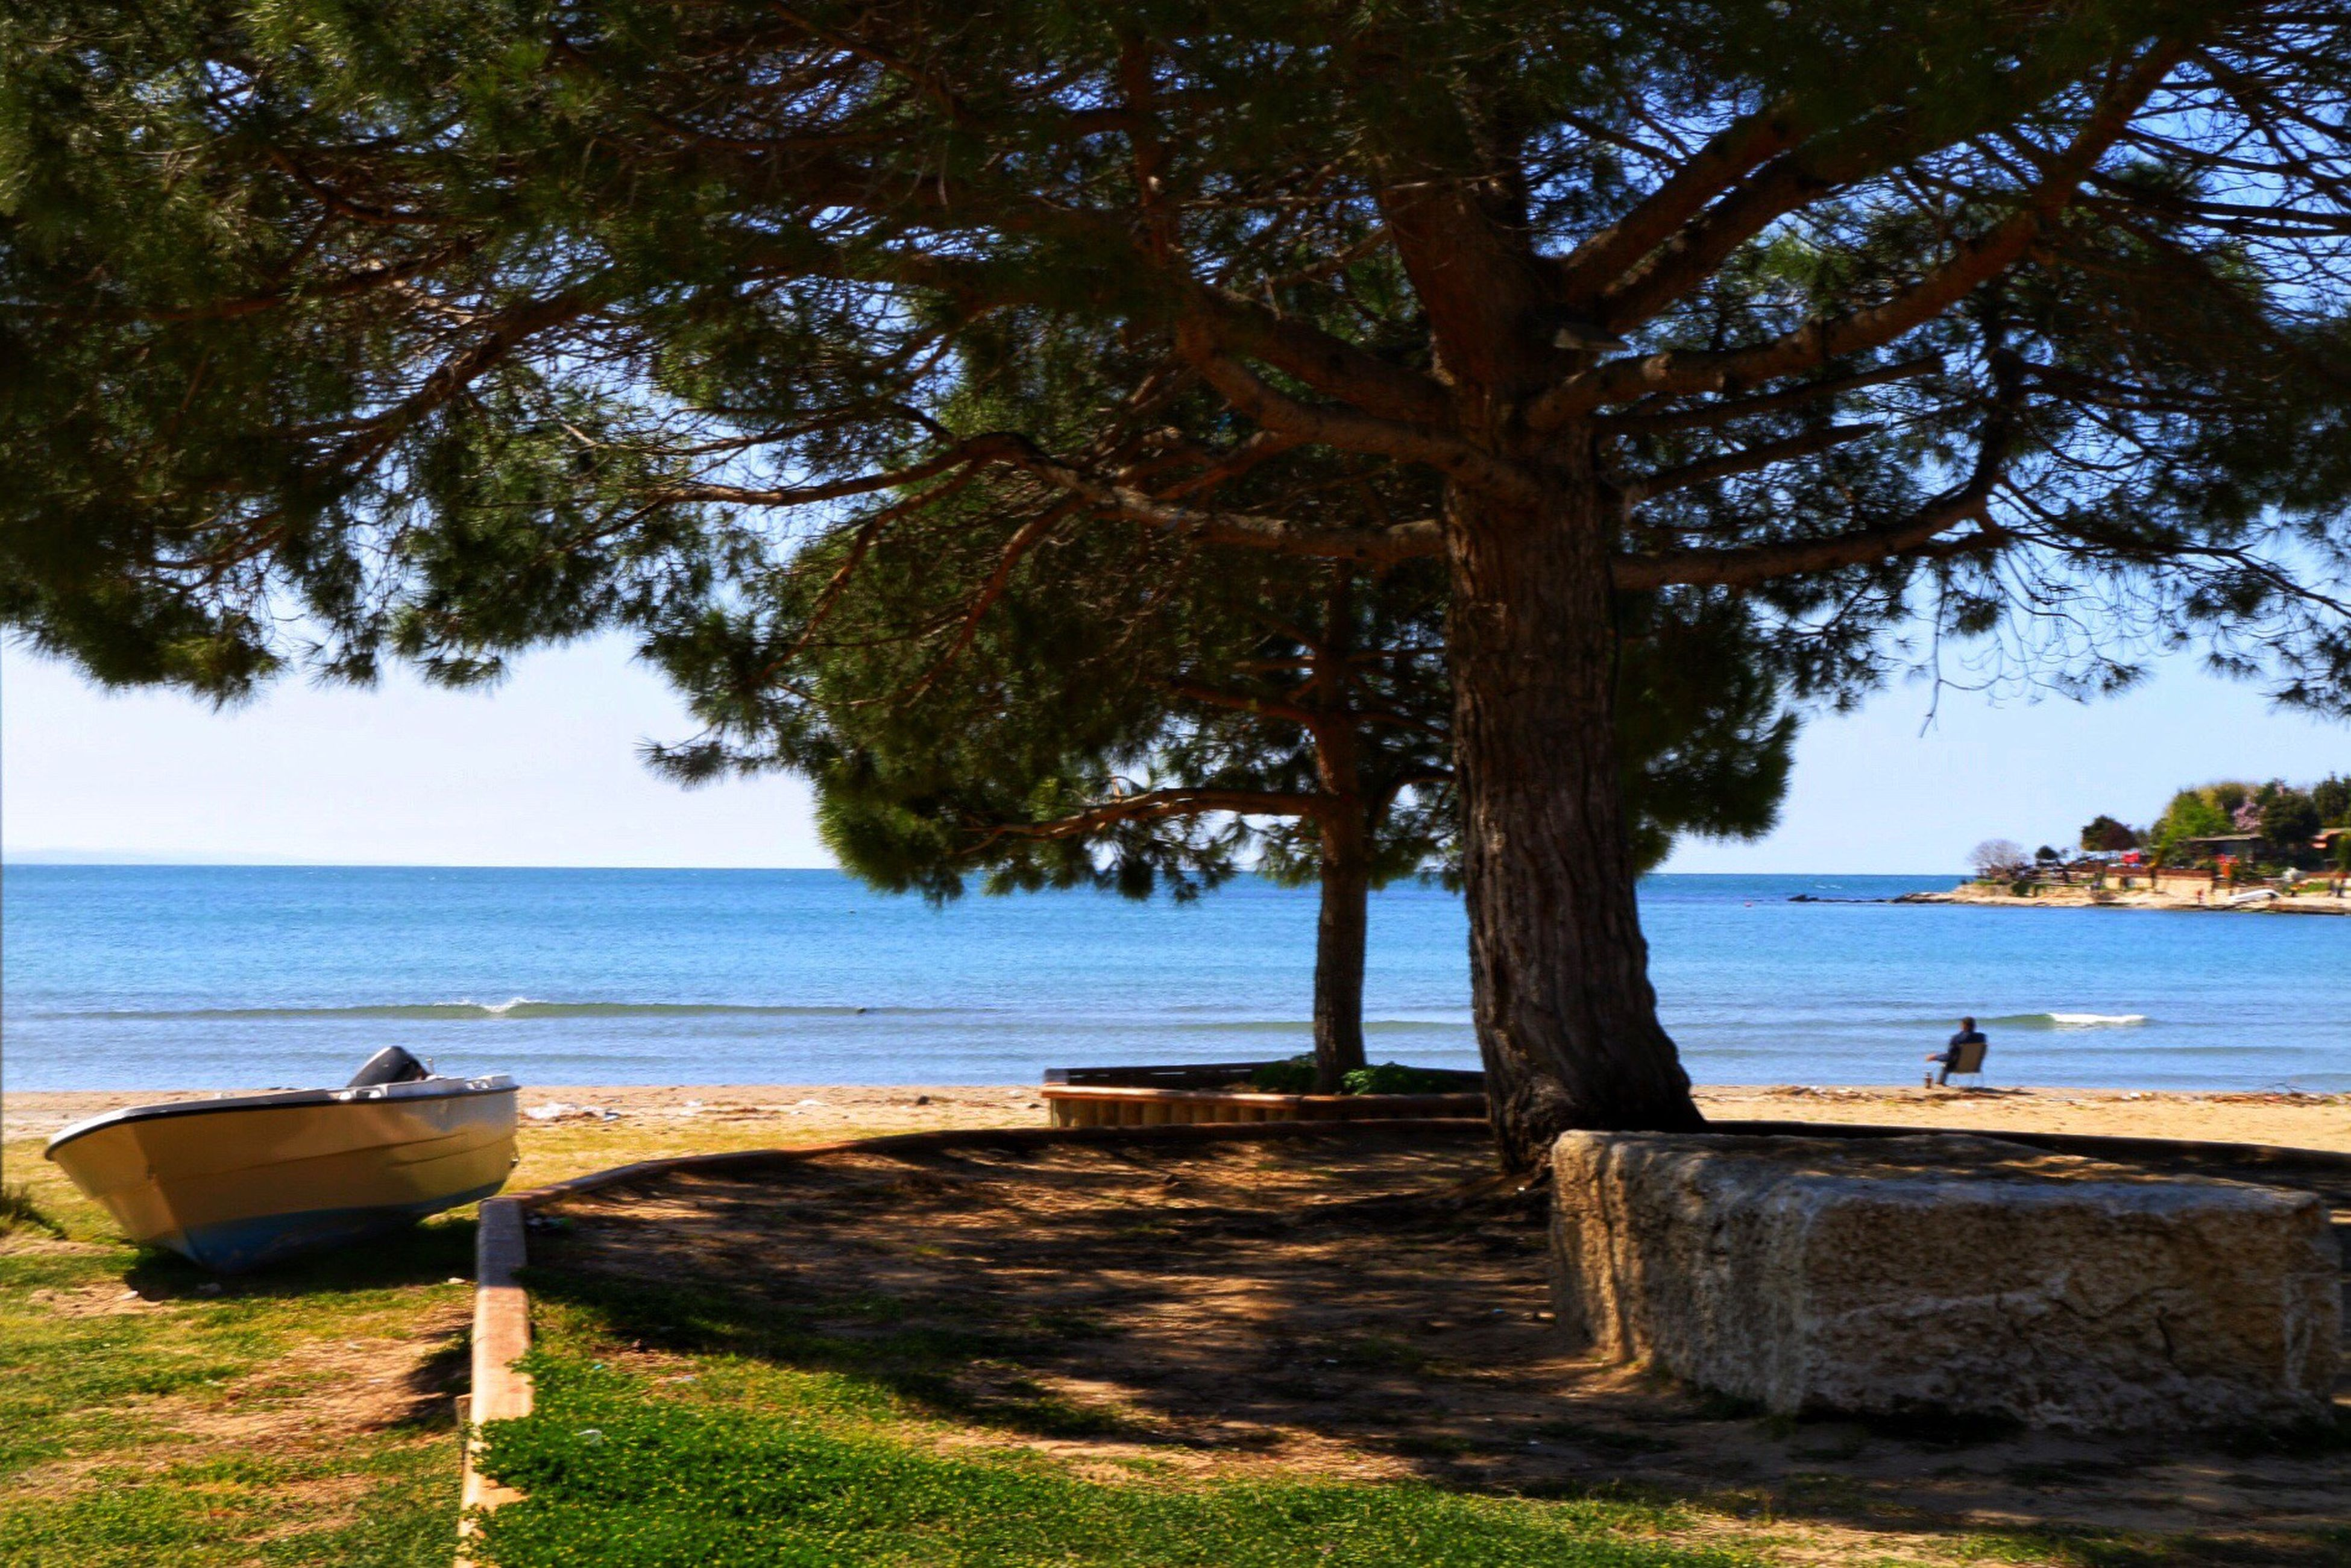 tree, water, sea, tranquility, tranquil scene, scenics, horizon over water, beauty in nature, nature, tree trunk, beach, bench, sky, shore, growth, sunlight, idyllic, grass, relaxation, day